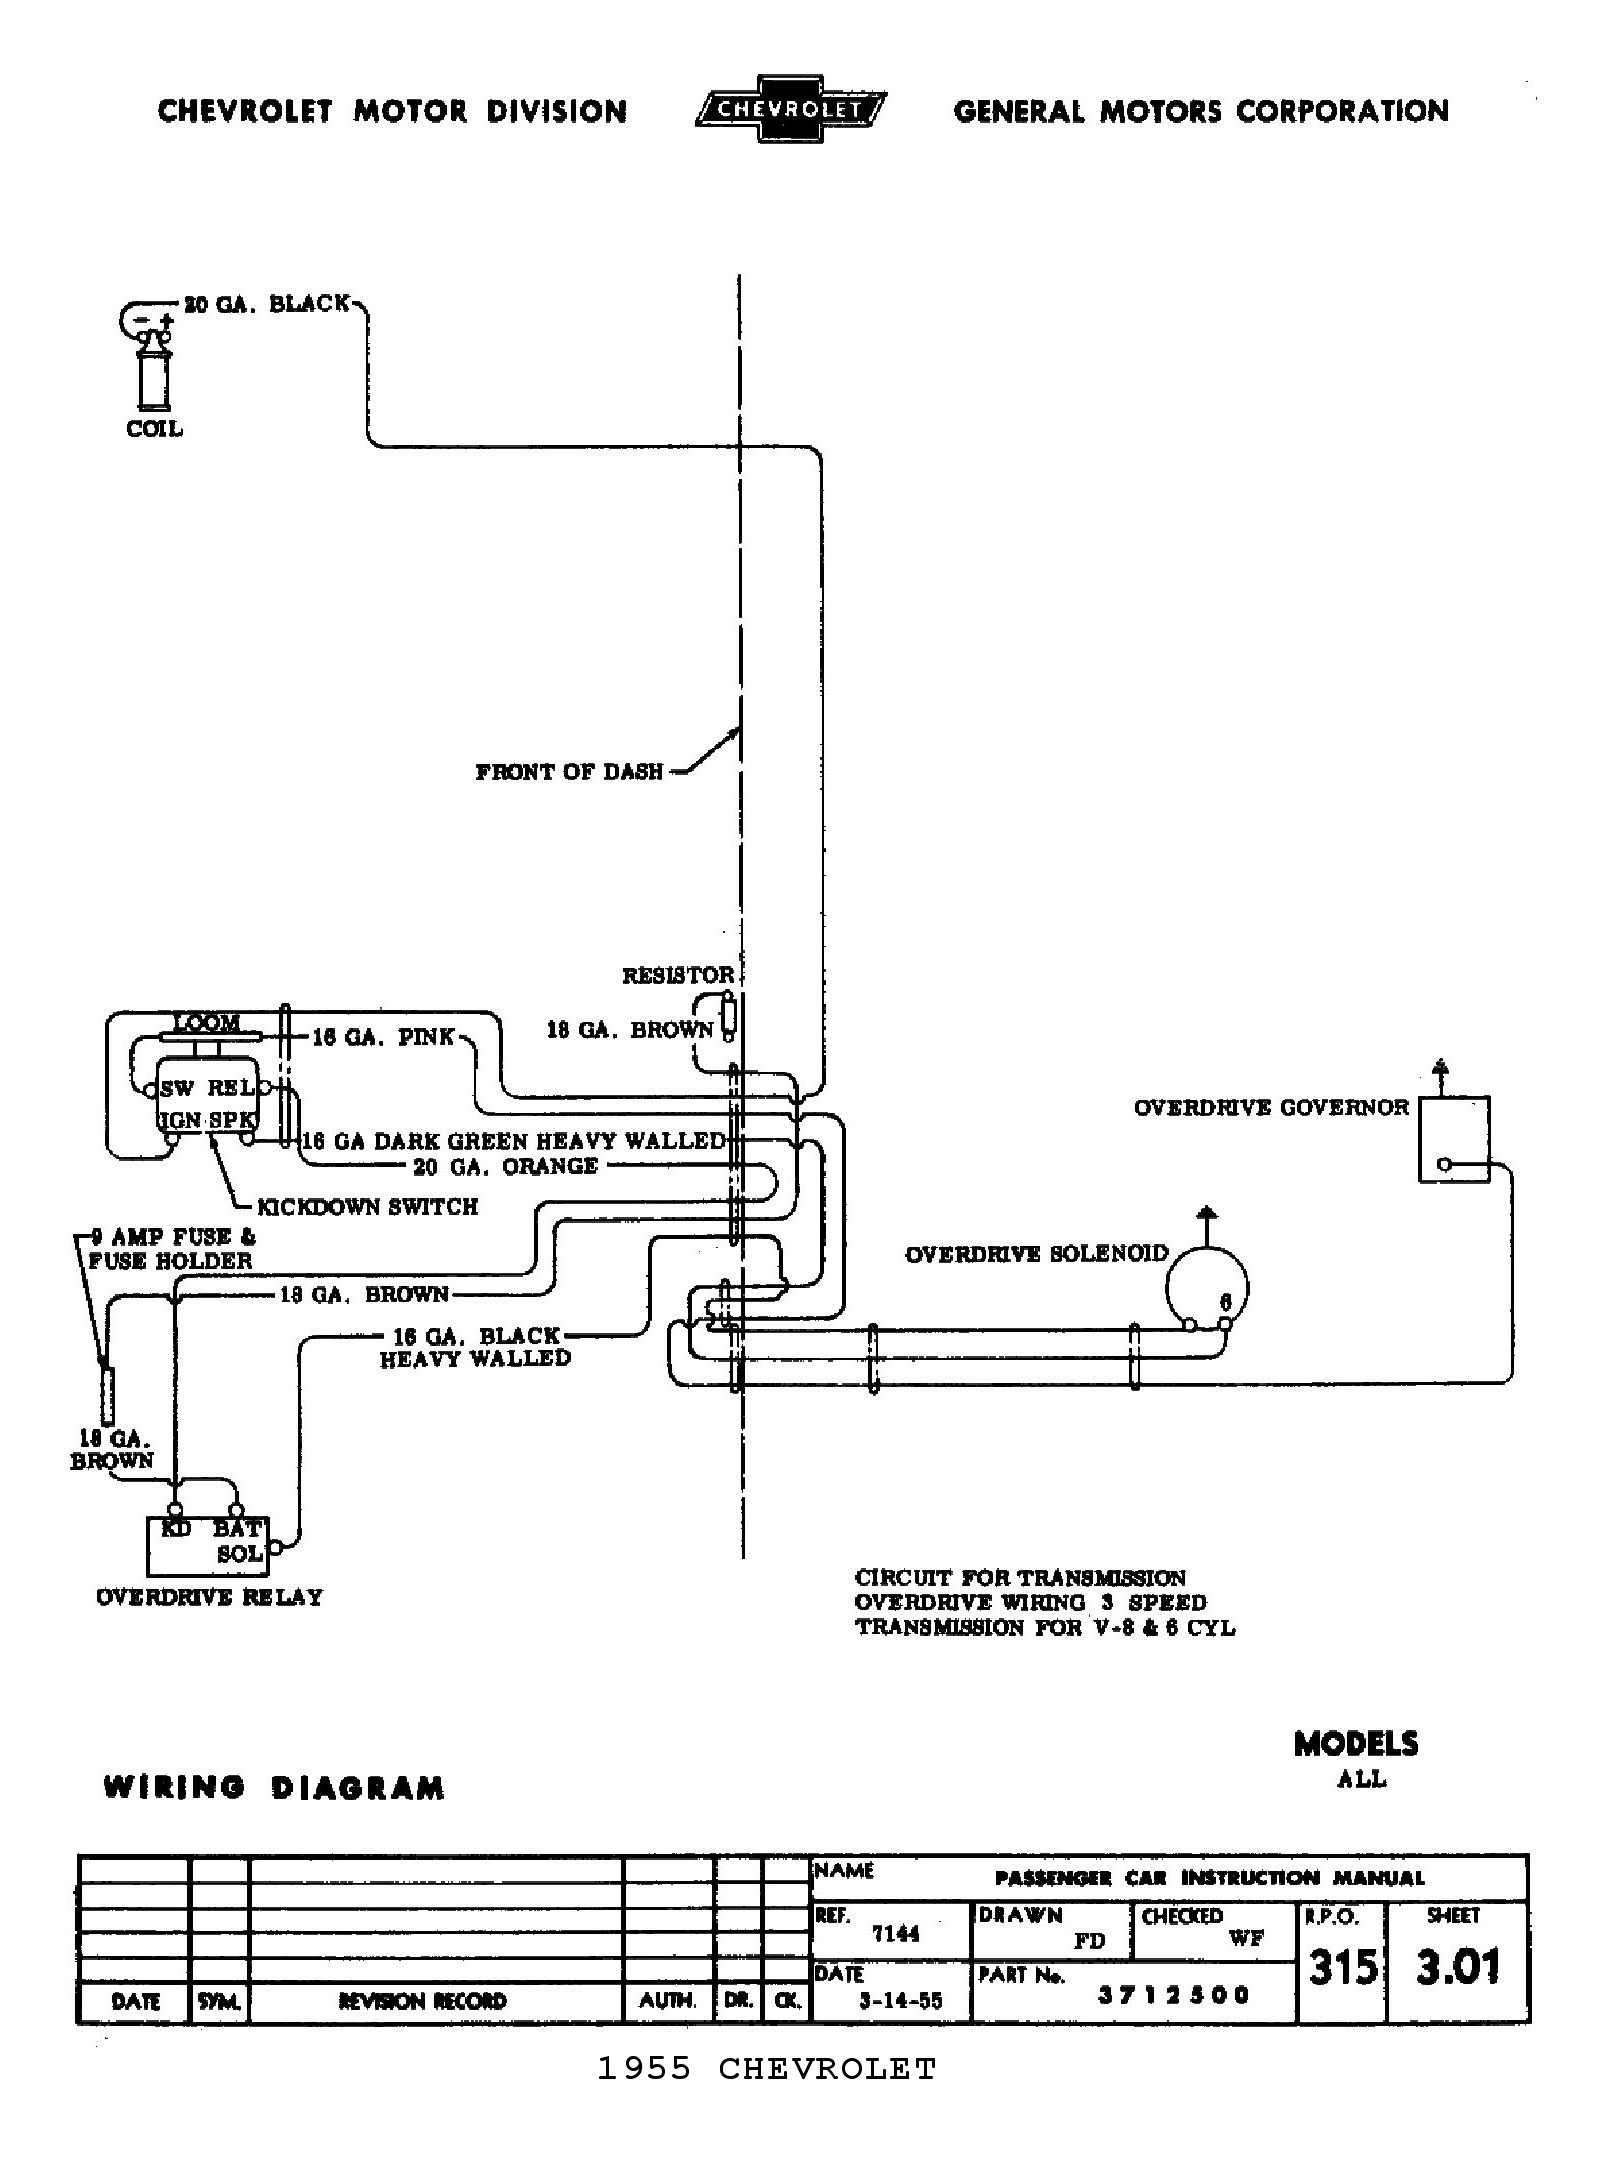 chevy wiring diagrams wiring diagram for 55 chevy bel air 1955 5 speed overdrive circuit · 1955 body wiring diagram